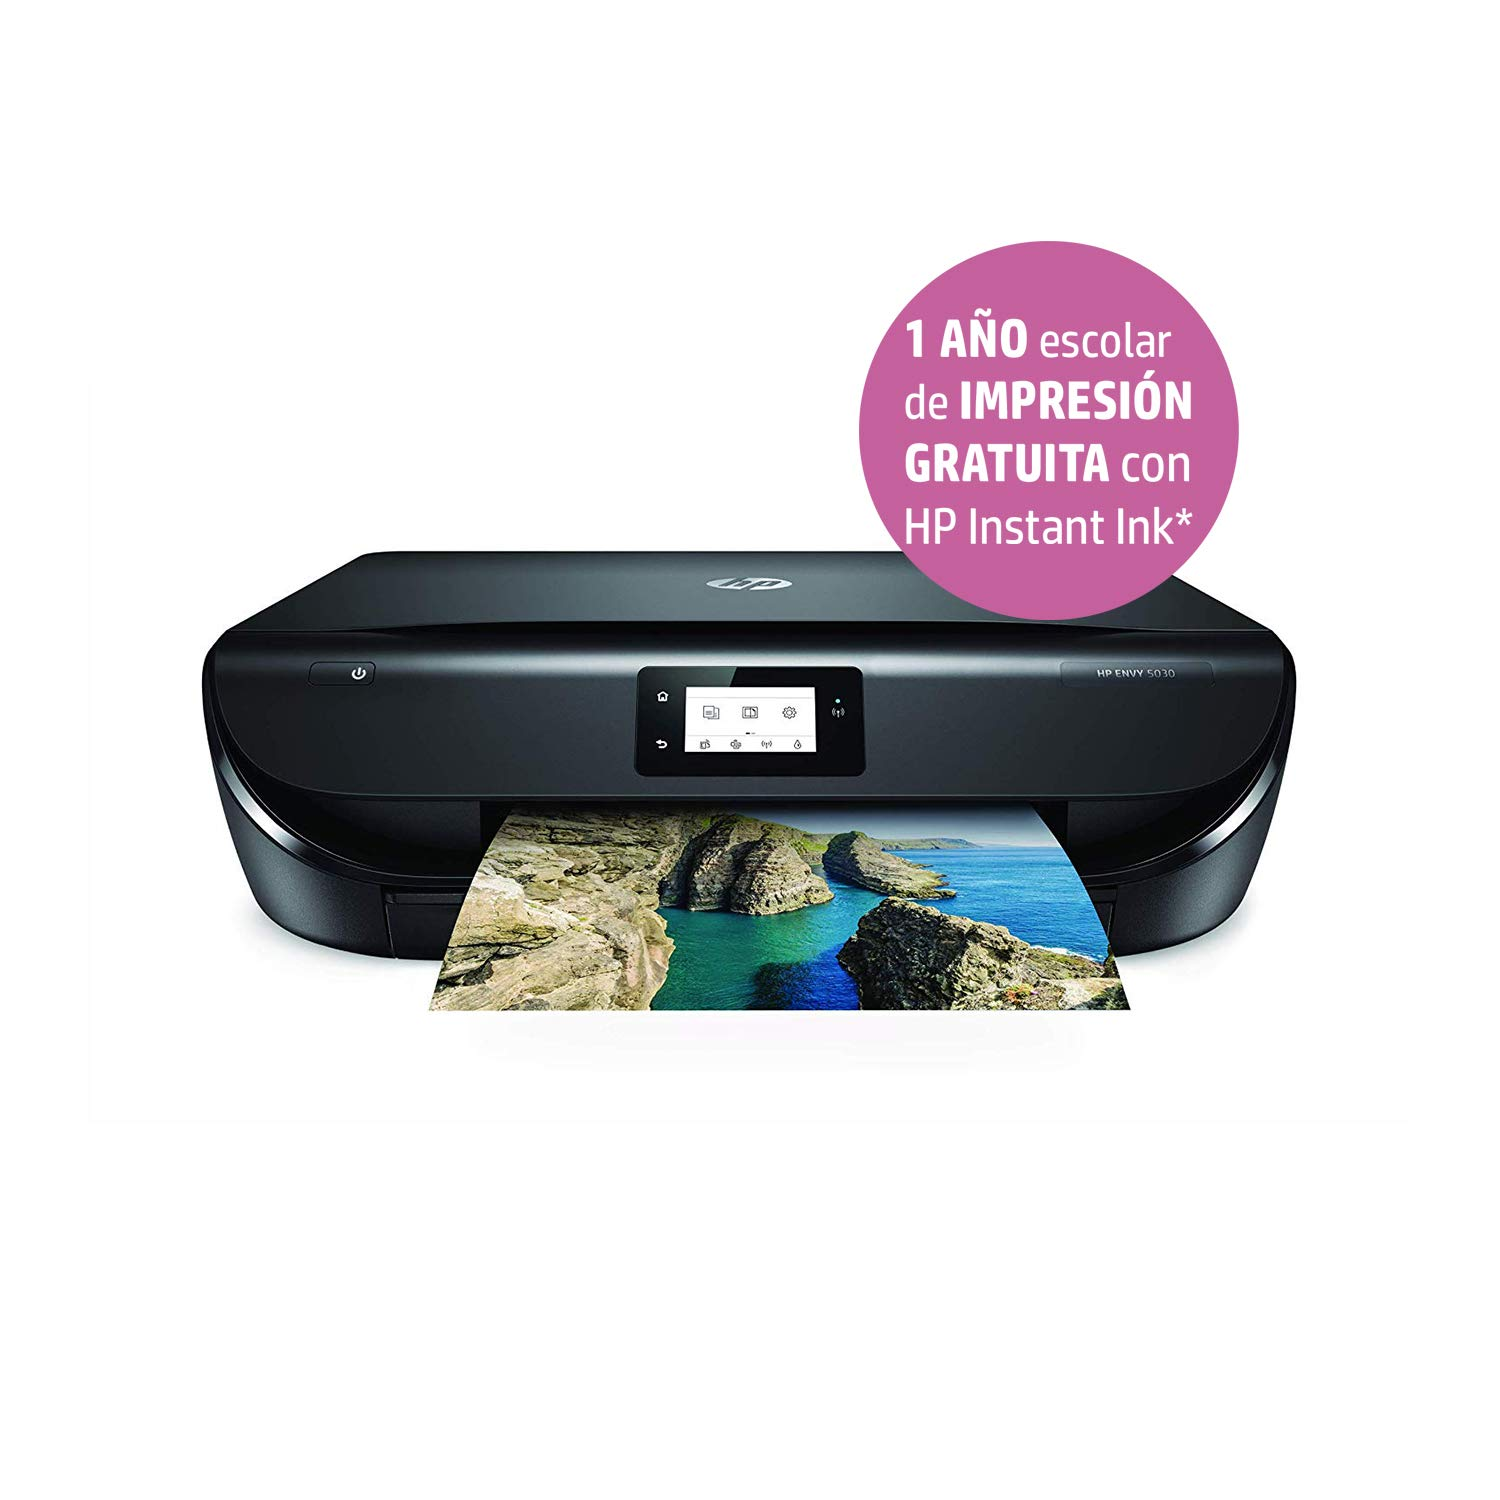 HP Envy 5030 – Impresora Multifunción Inalámbrica (Tinta, Wi-Fi, Copiar, Escanear, 1200 x 1200 PPP) Color Negro + HP N9K07AE 304XL Cartucho de Tinta ...